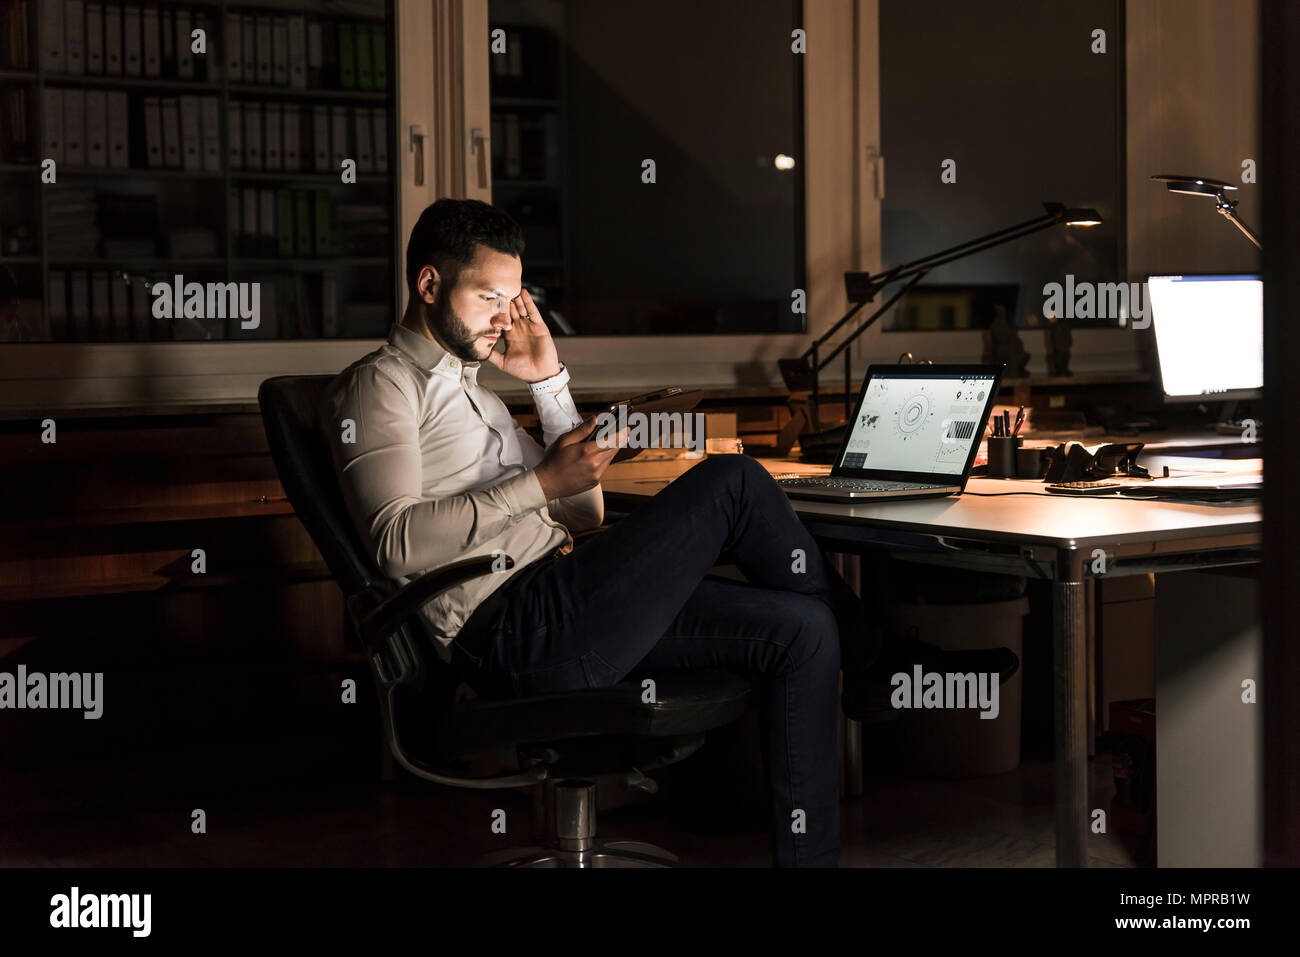 Businessman using tablet in office at night - Stock Image